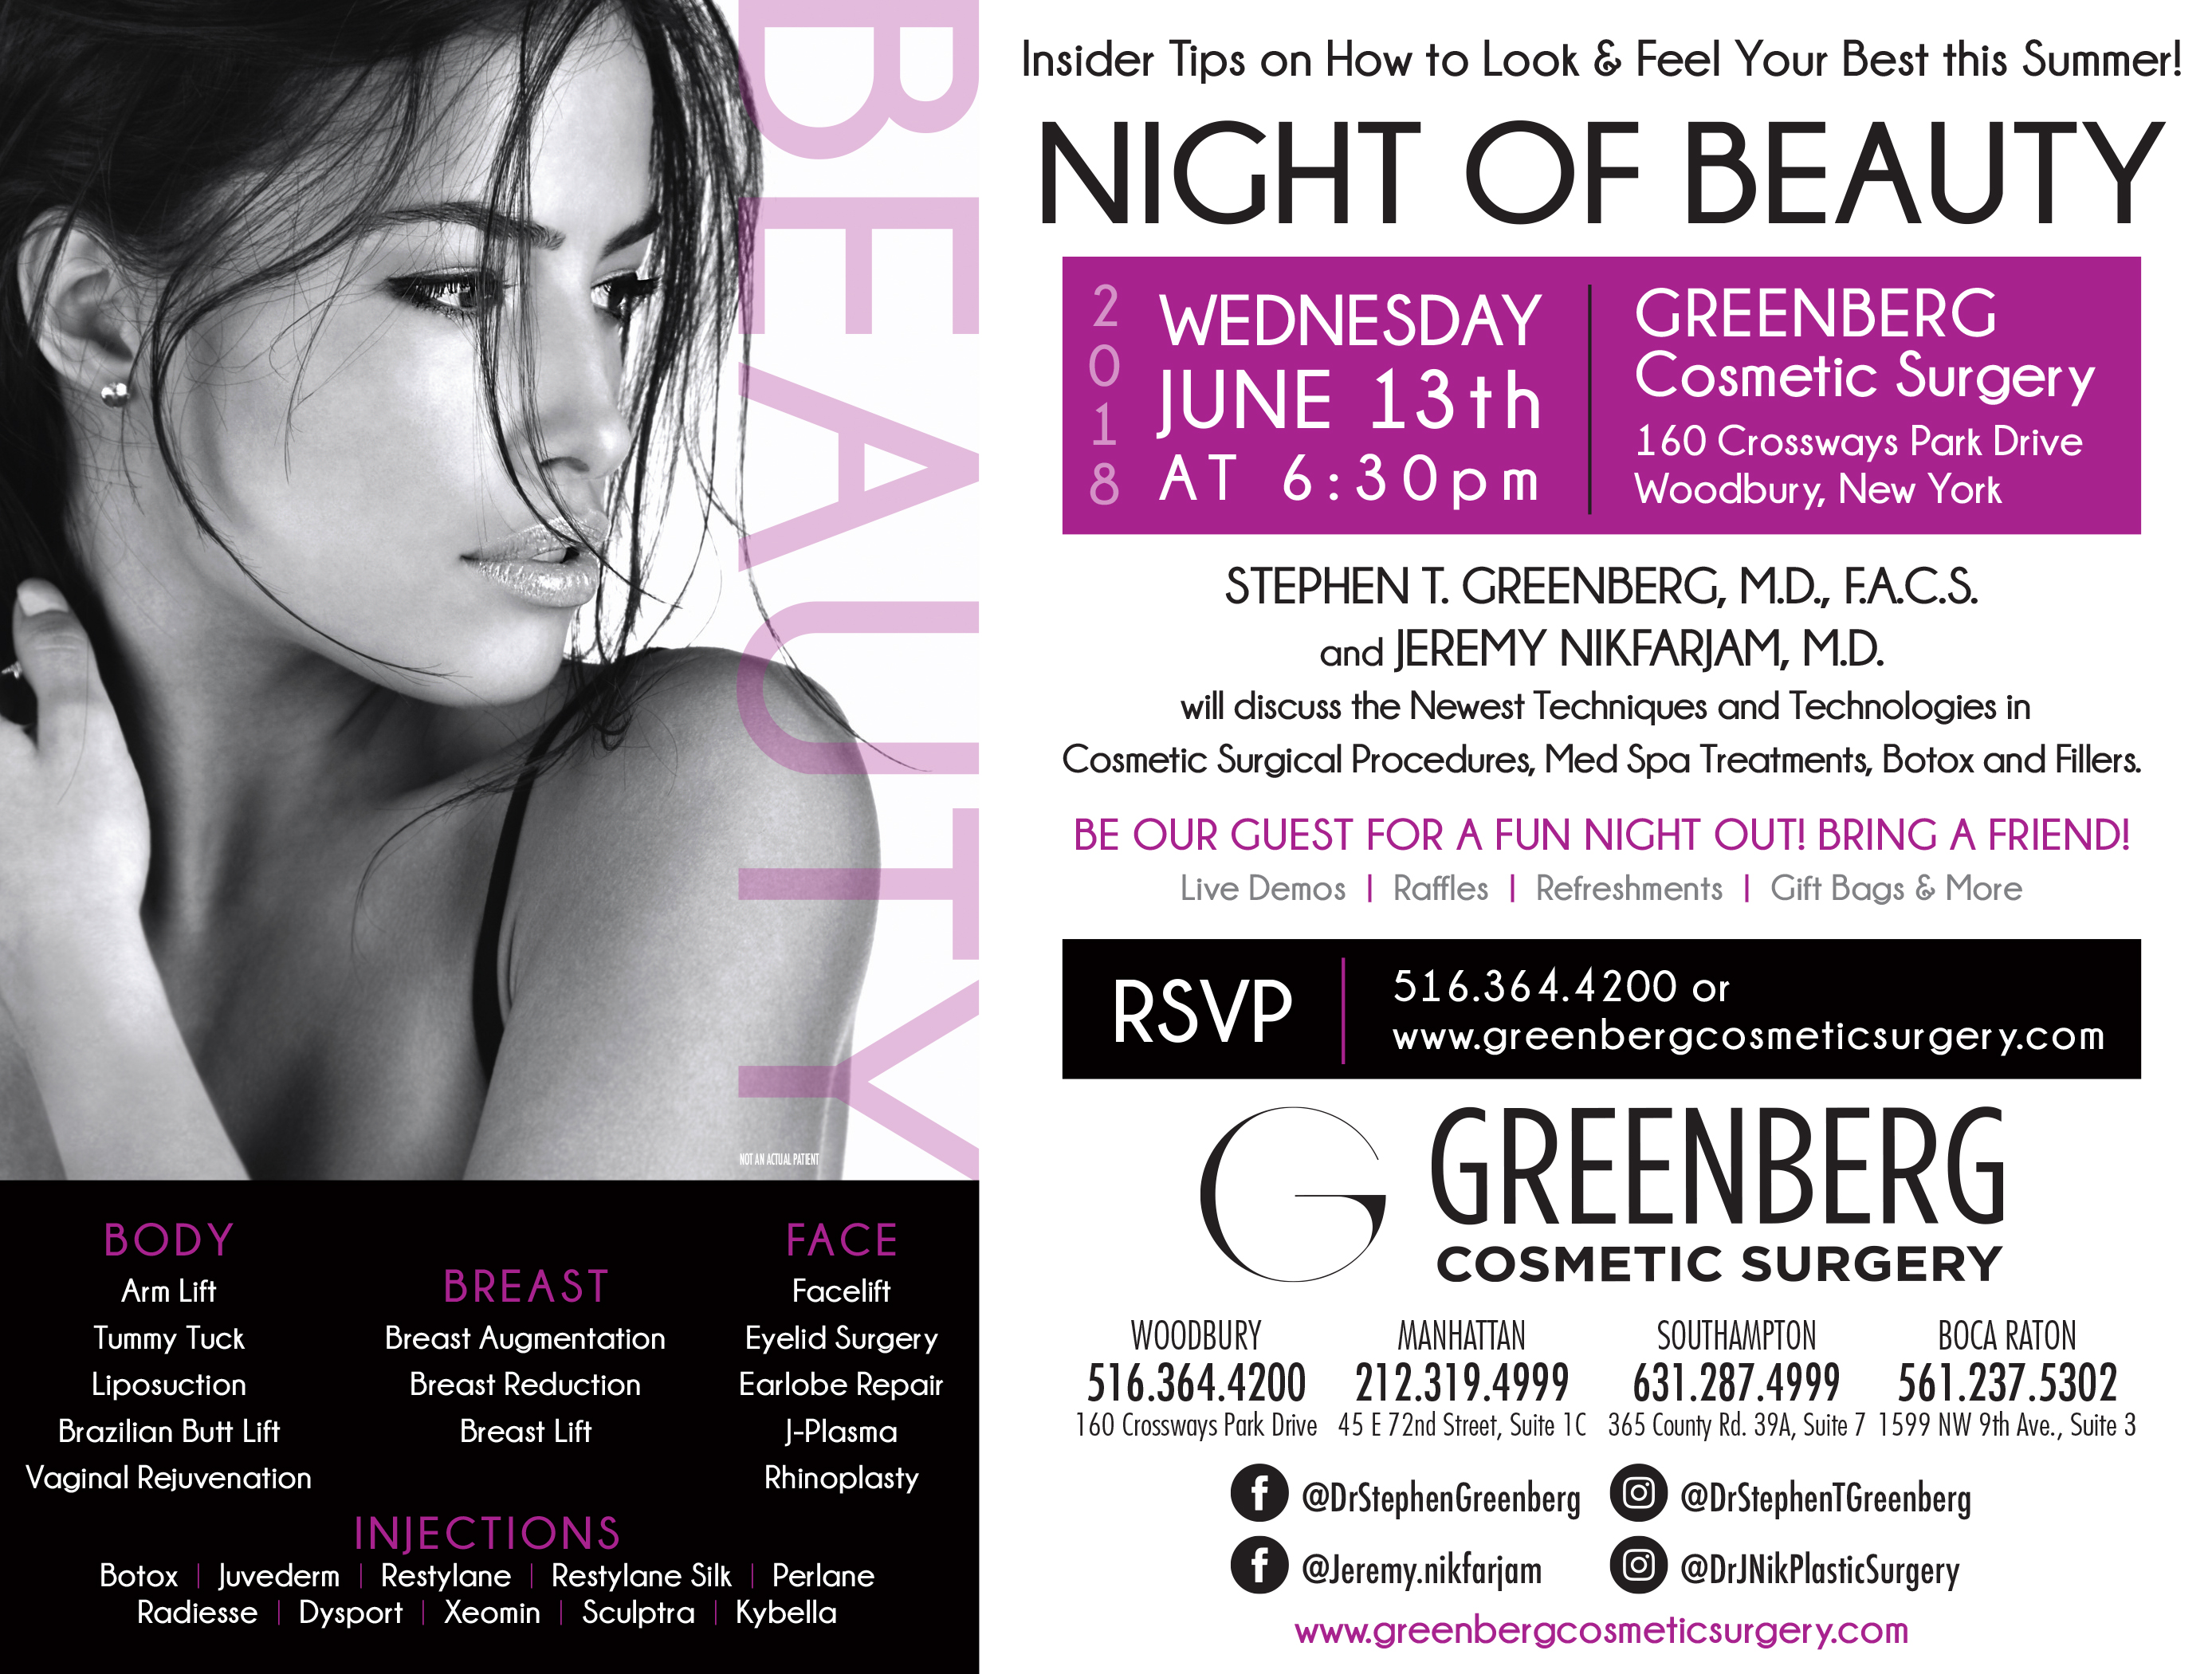 Greenberg Cosmetic Surgery